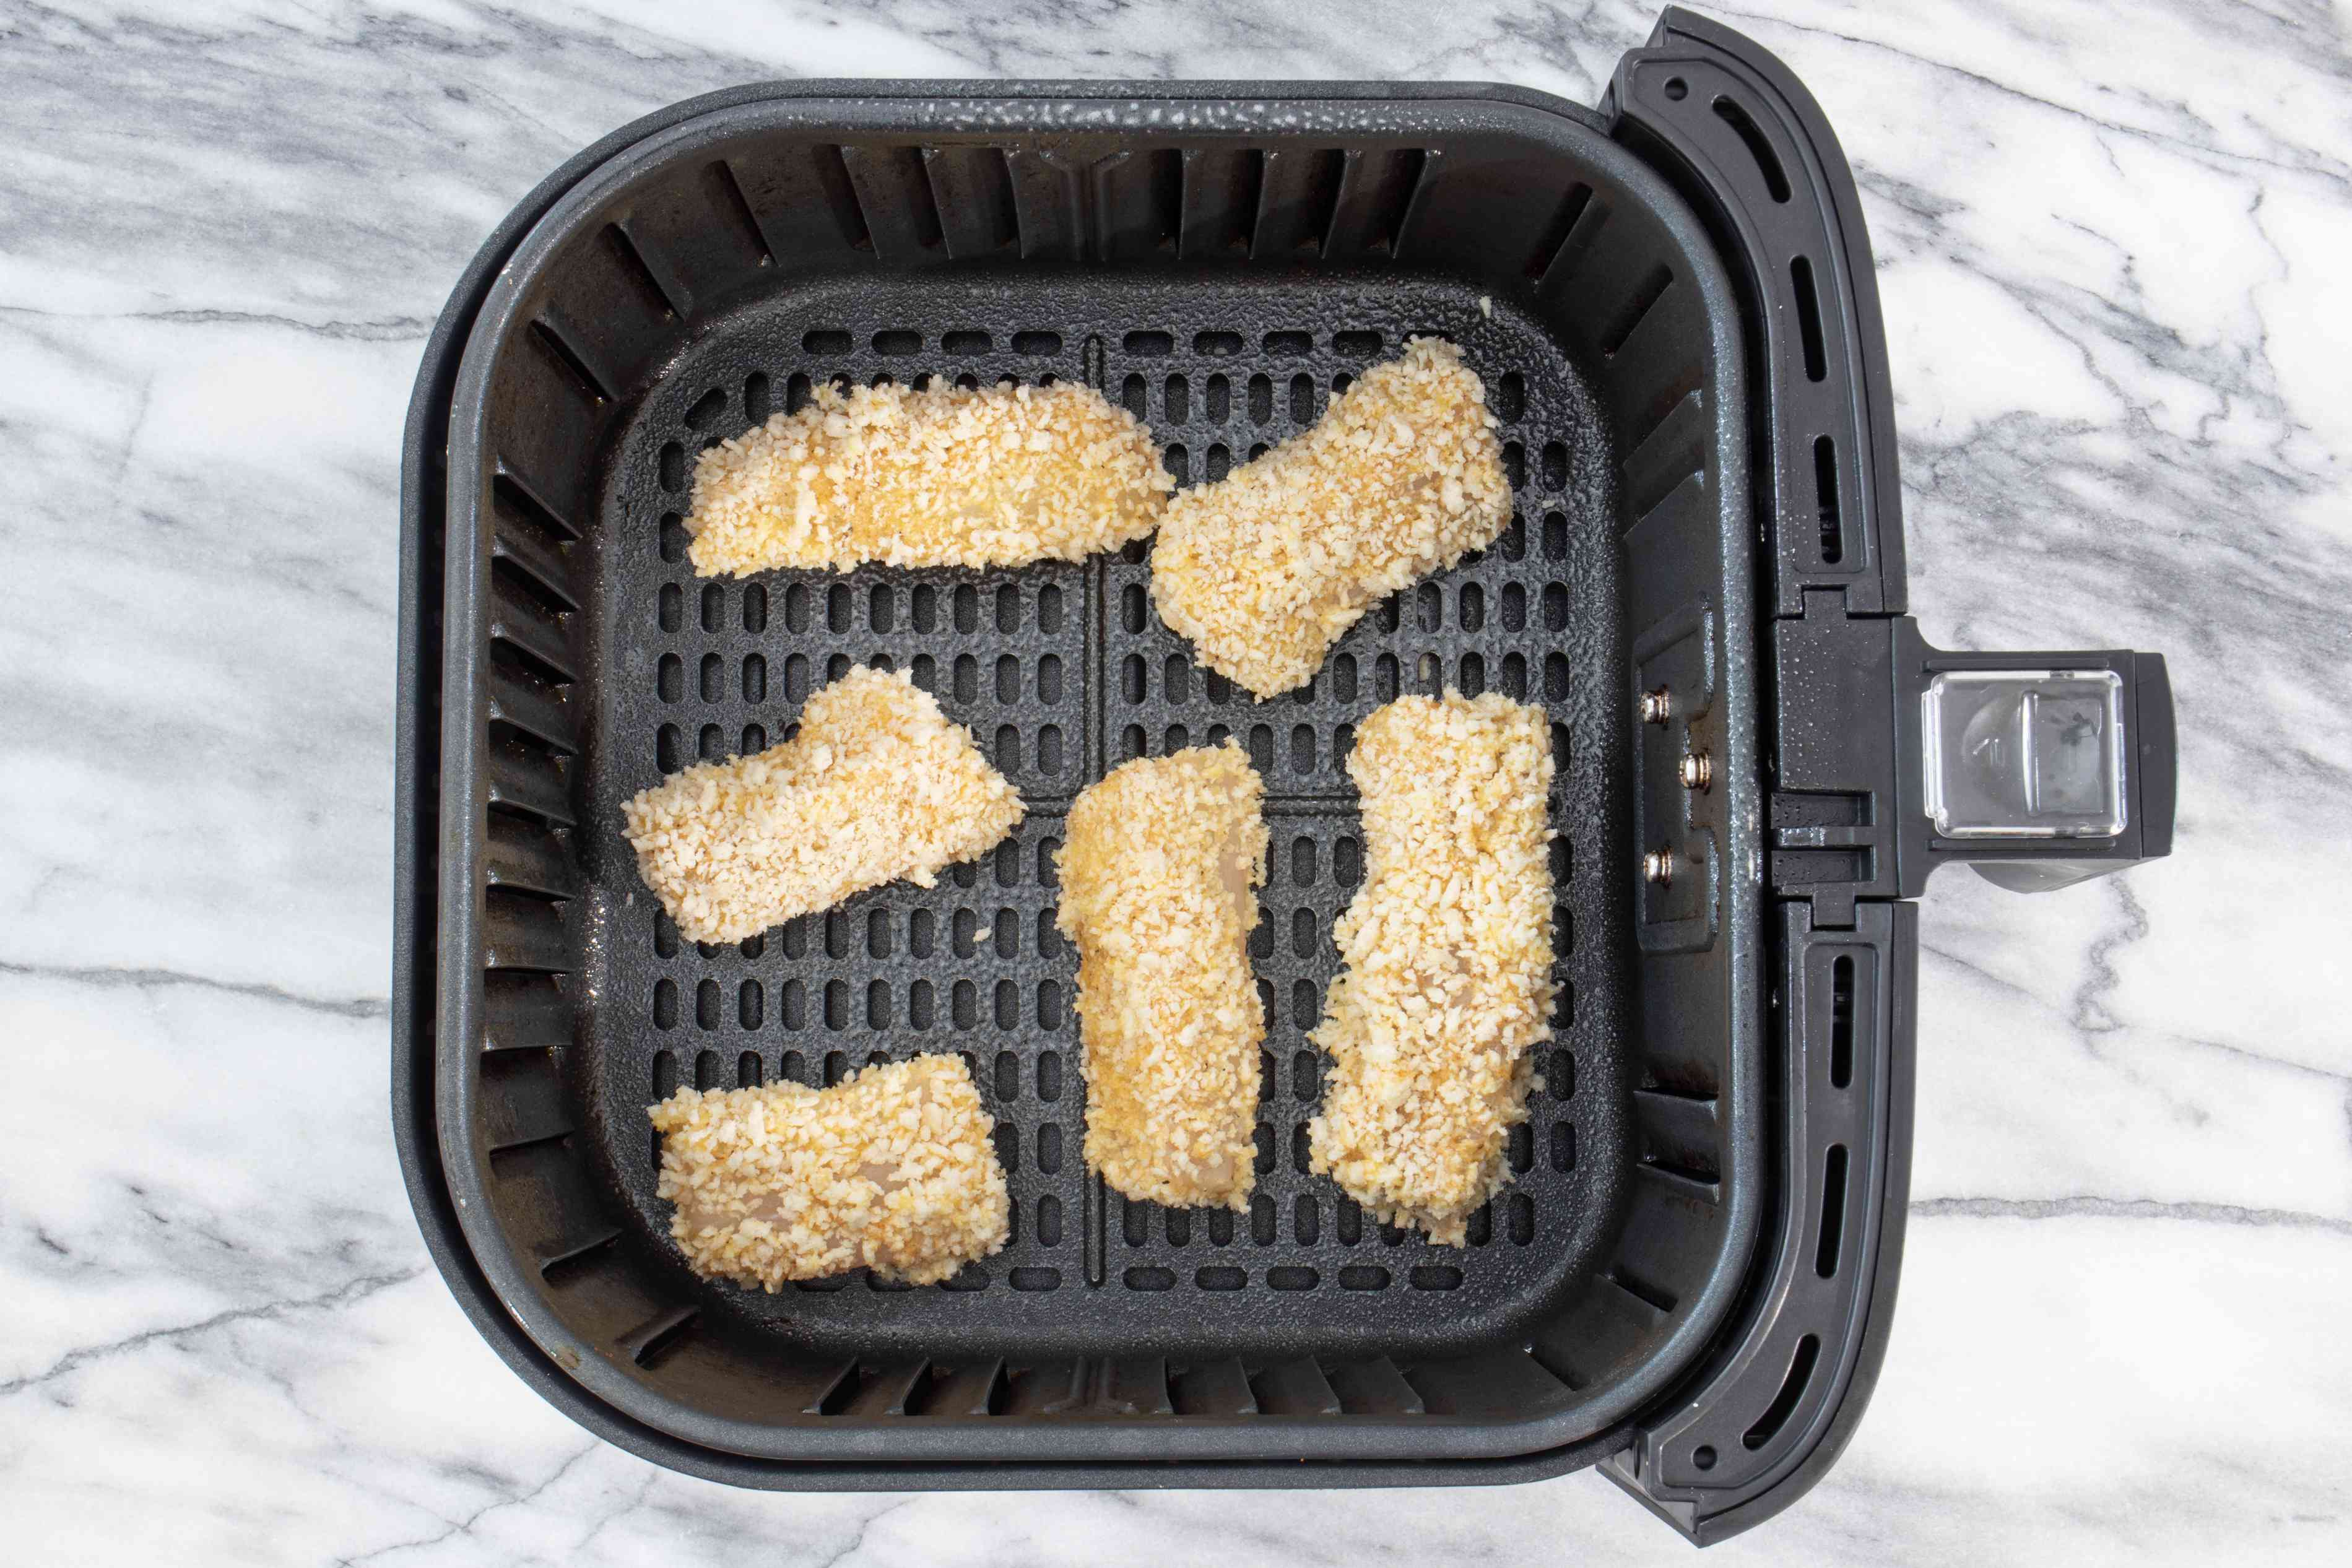 air fryer with fish sticks